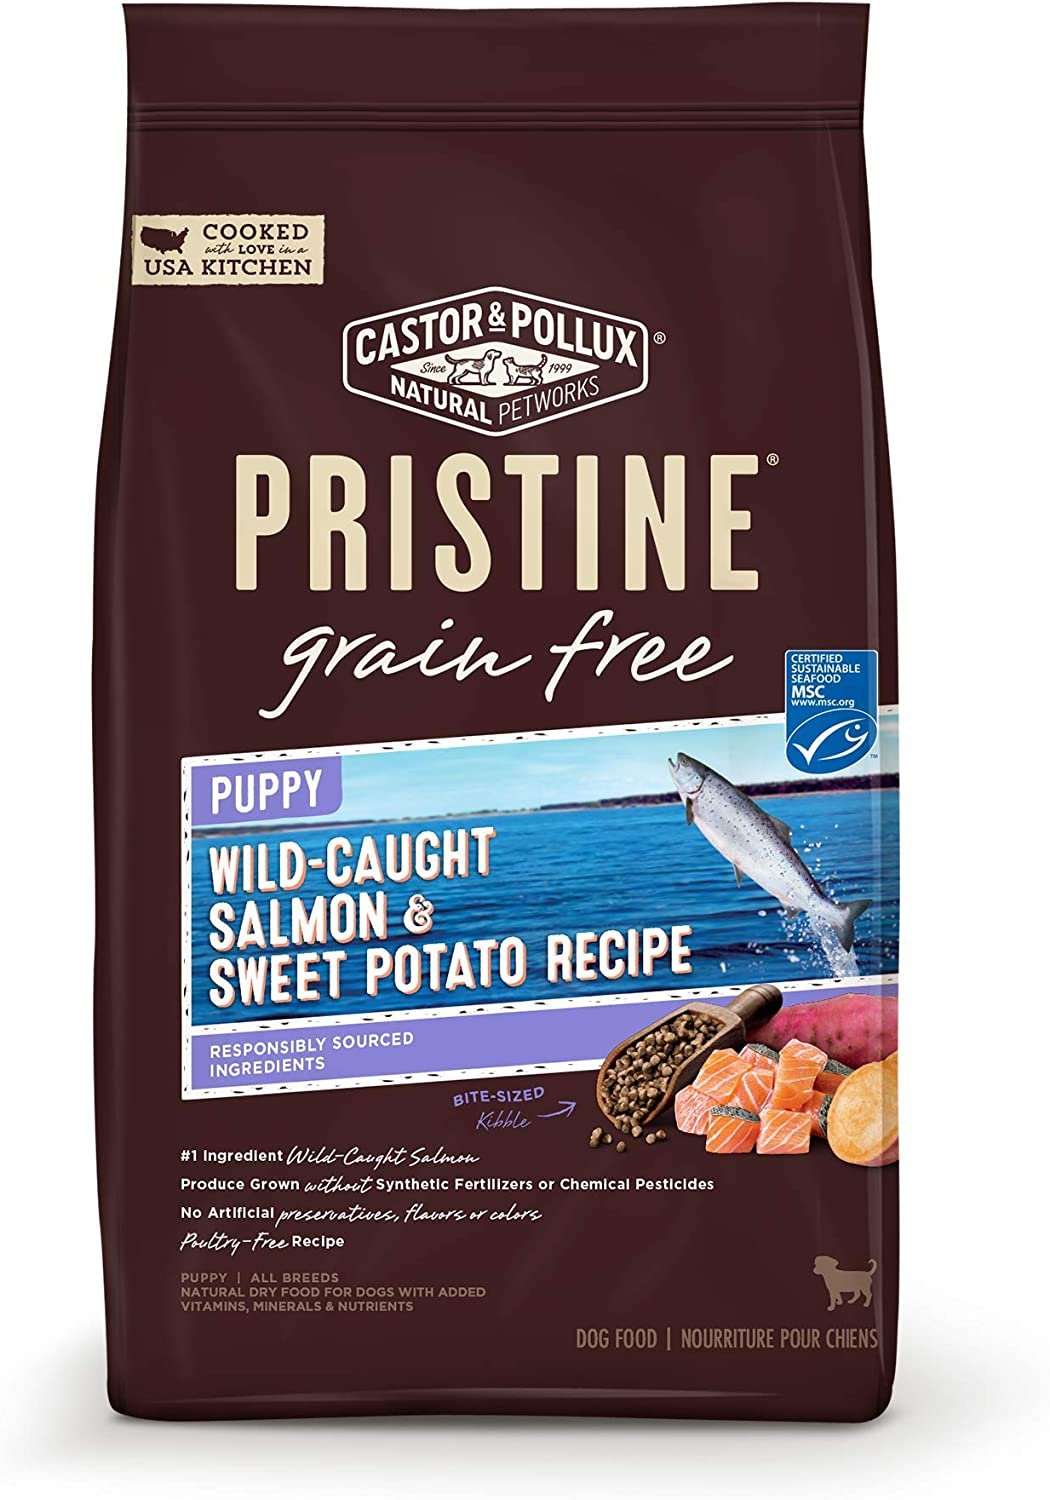 Castor & Pollux Pristine Grain Free Puppy Wild Caught Salmon & Sweet Potato Recipe 4.0 lb Bag